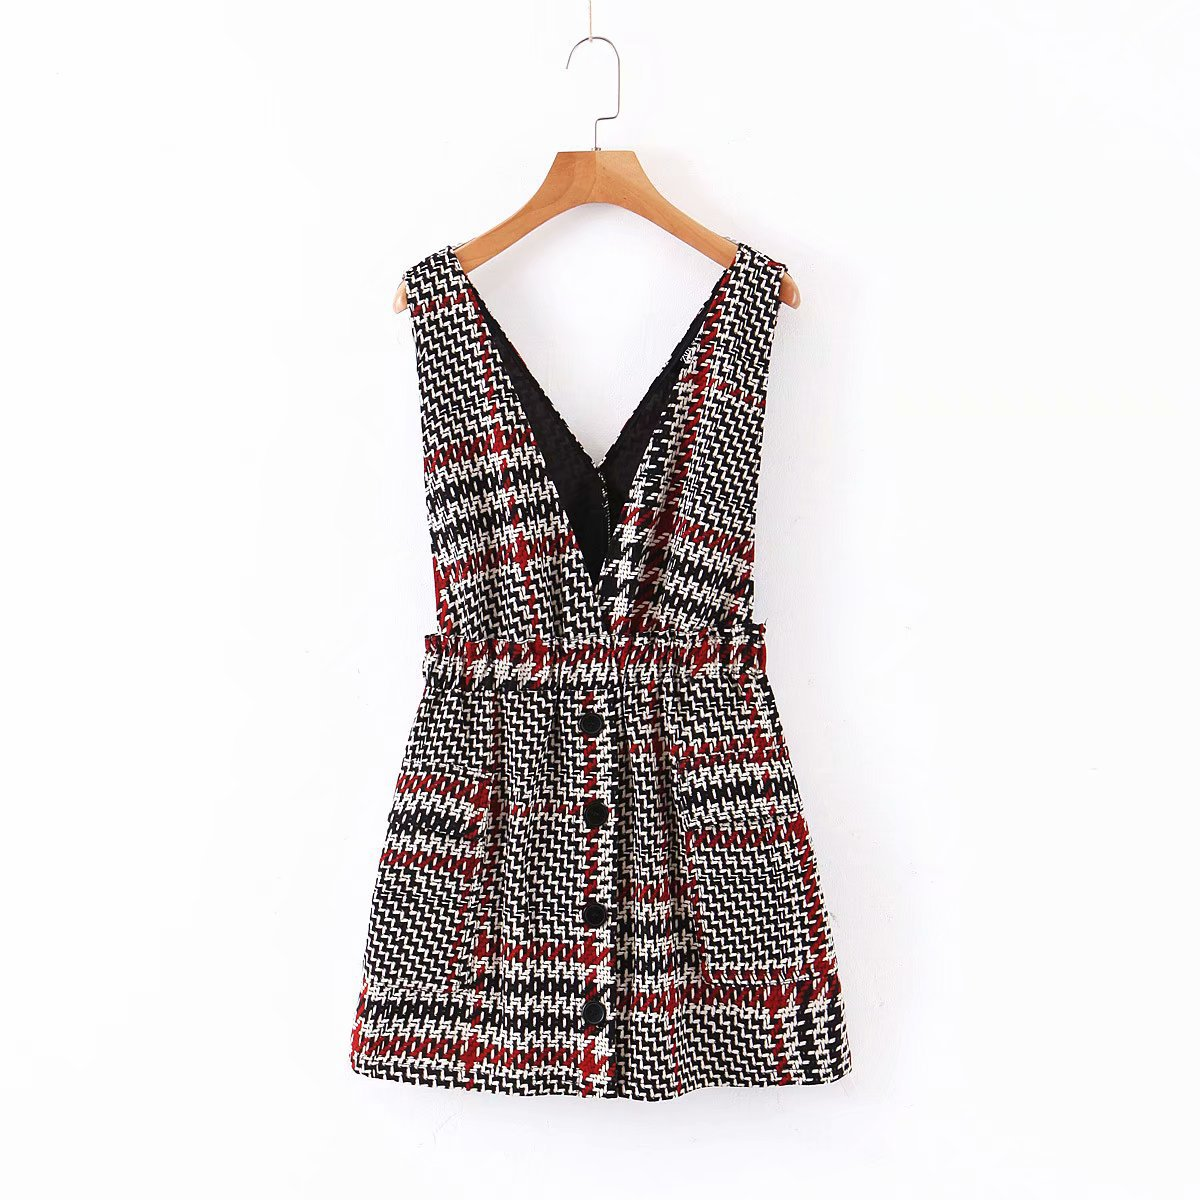 Women Elegant Tweed Suspender Skirt Pockets Button Decorate Overalls Elastic Waist Retro Casual Chic Mini Skirts